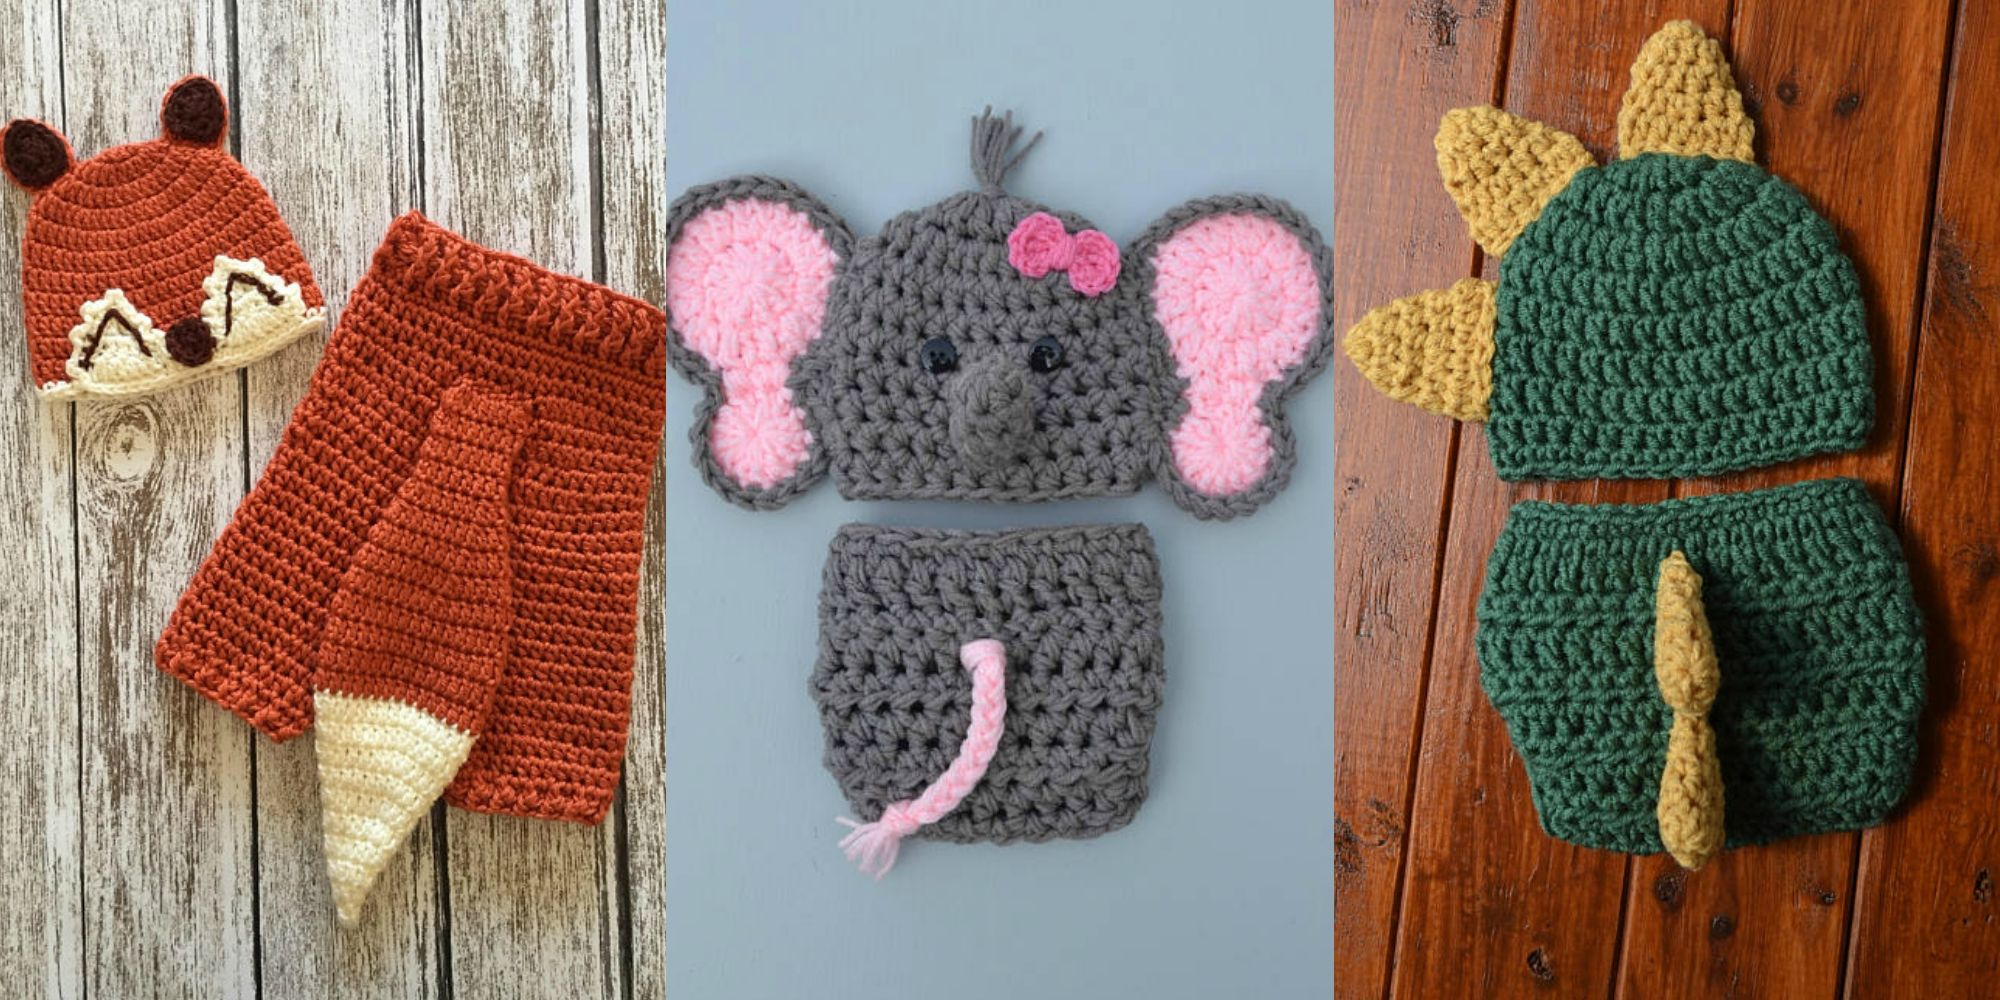 13 Crocheted Baby Halloween Costumes Cutest Crocheted And Knitted